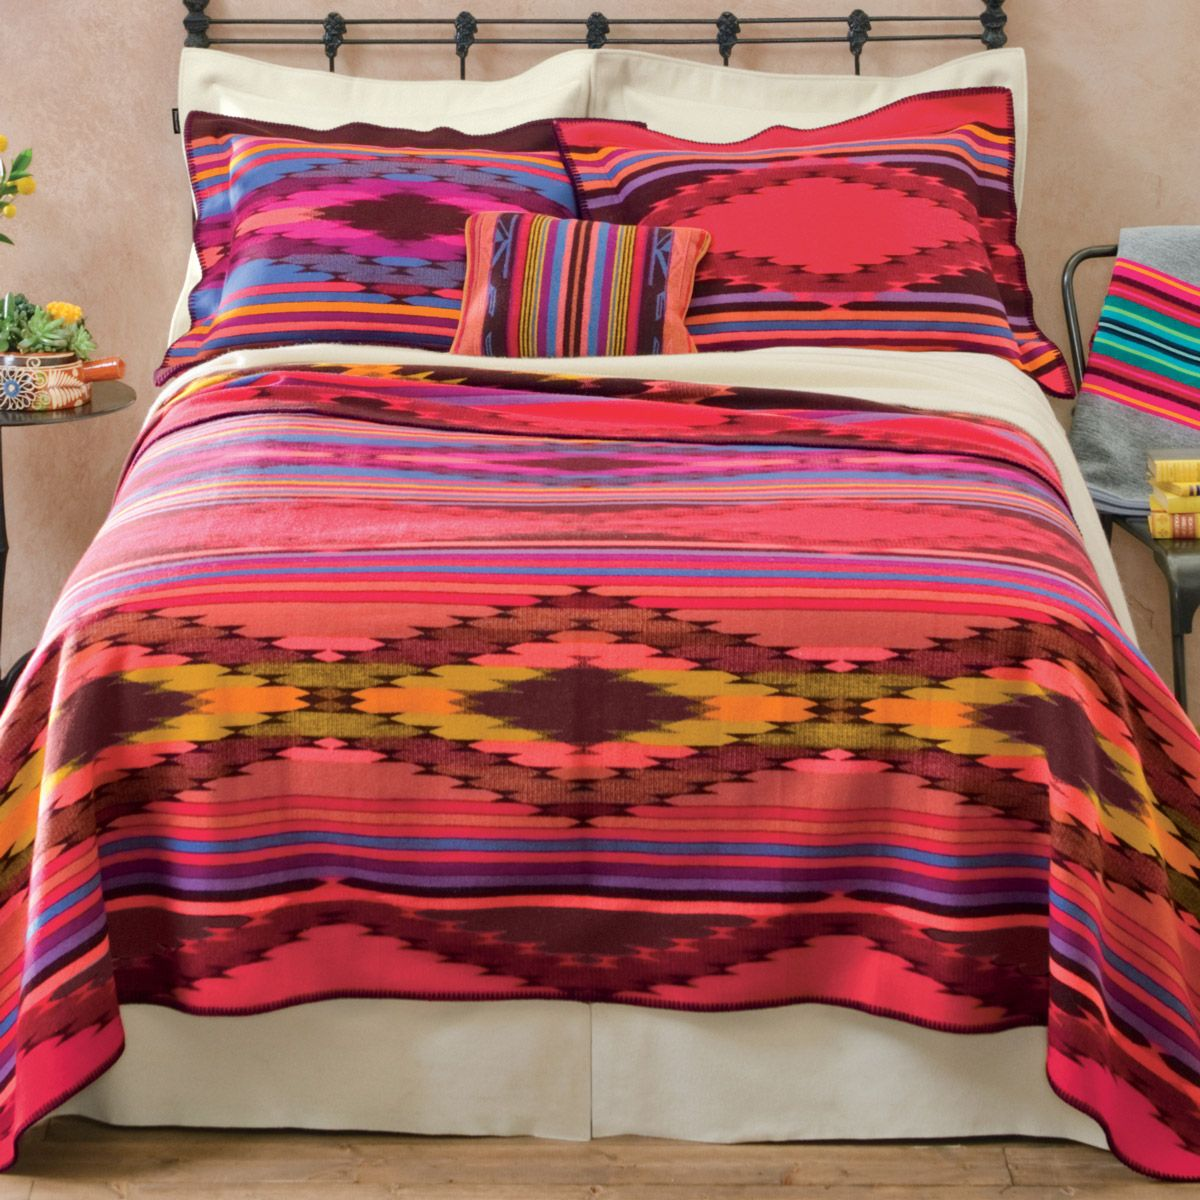 Bright River Wool Blanket Twin Bright Bedding Sets Western Bedding Bed For Girls Room